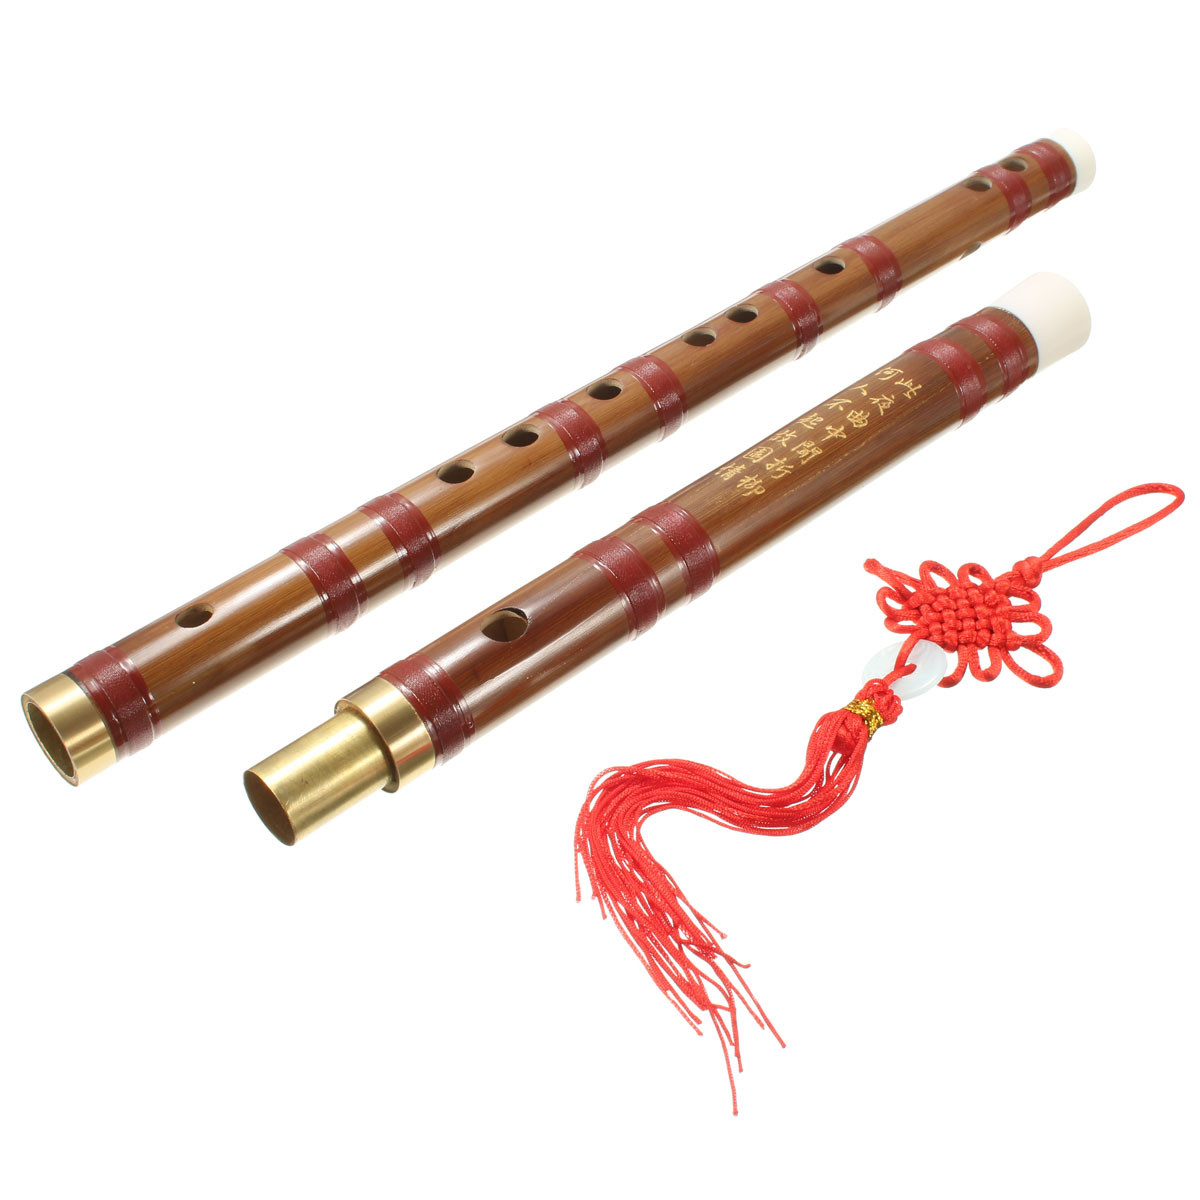 61MM Handmade D Key Chinese Musical Instrument Bamboo Flute +Membrane+ Knot+ Bag Gift